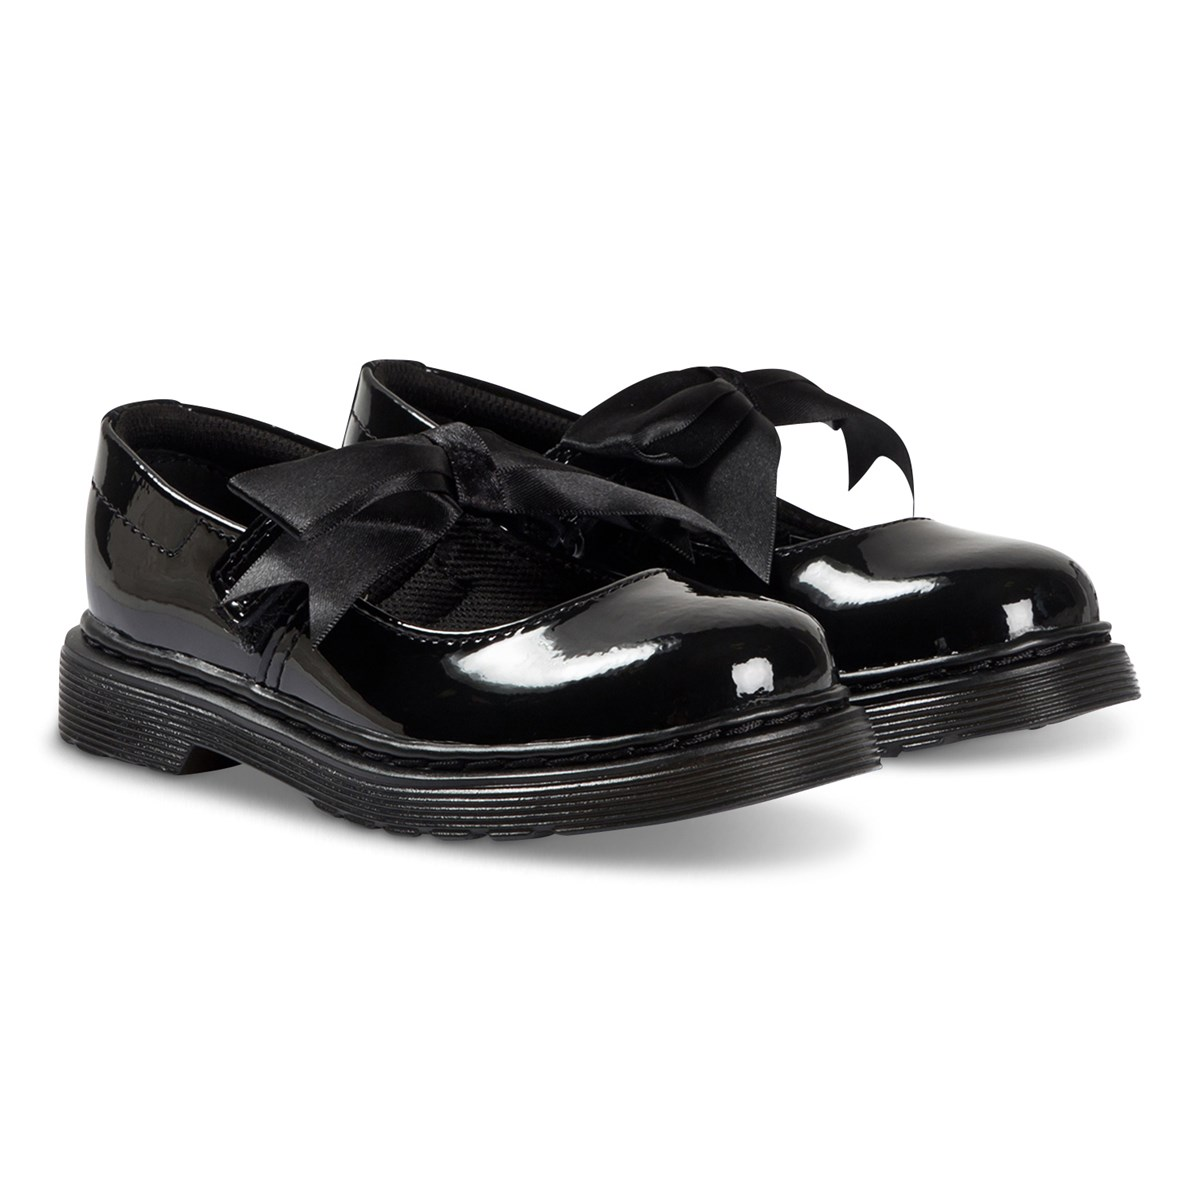 Dr. Martens - Maccy Bow Mary Jane Shoes